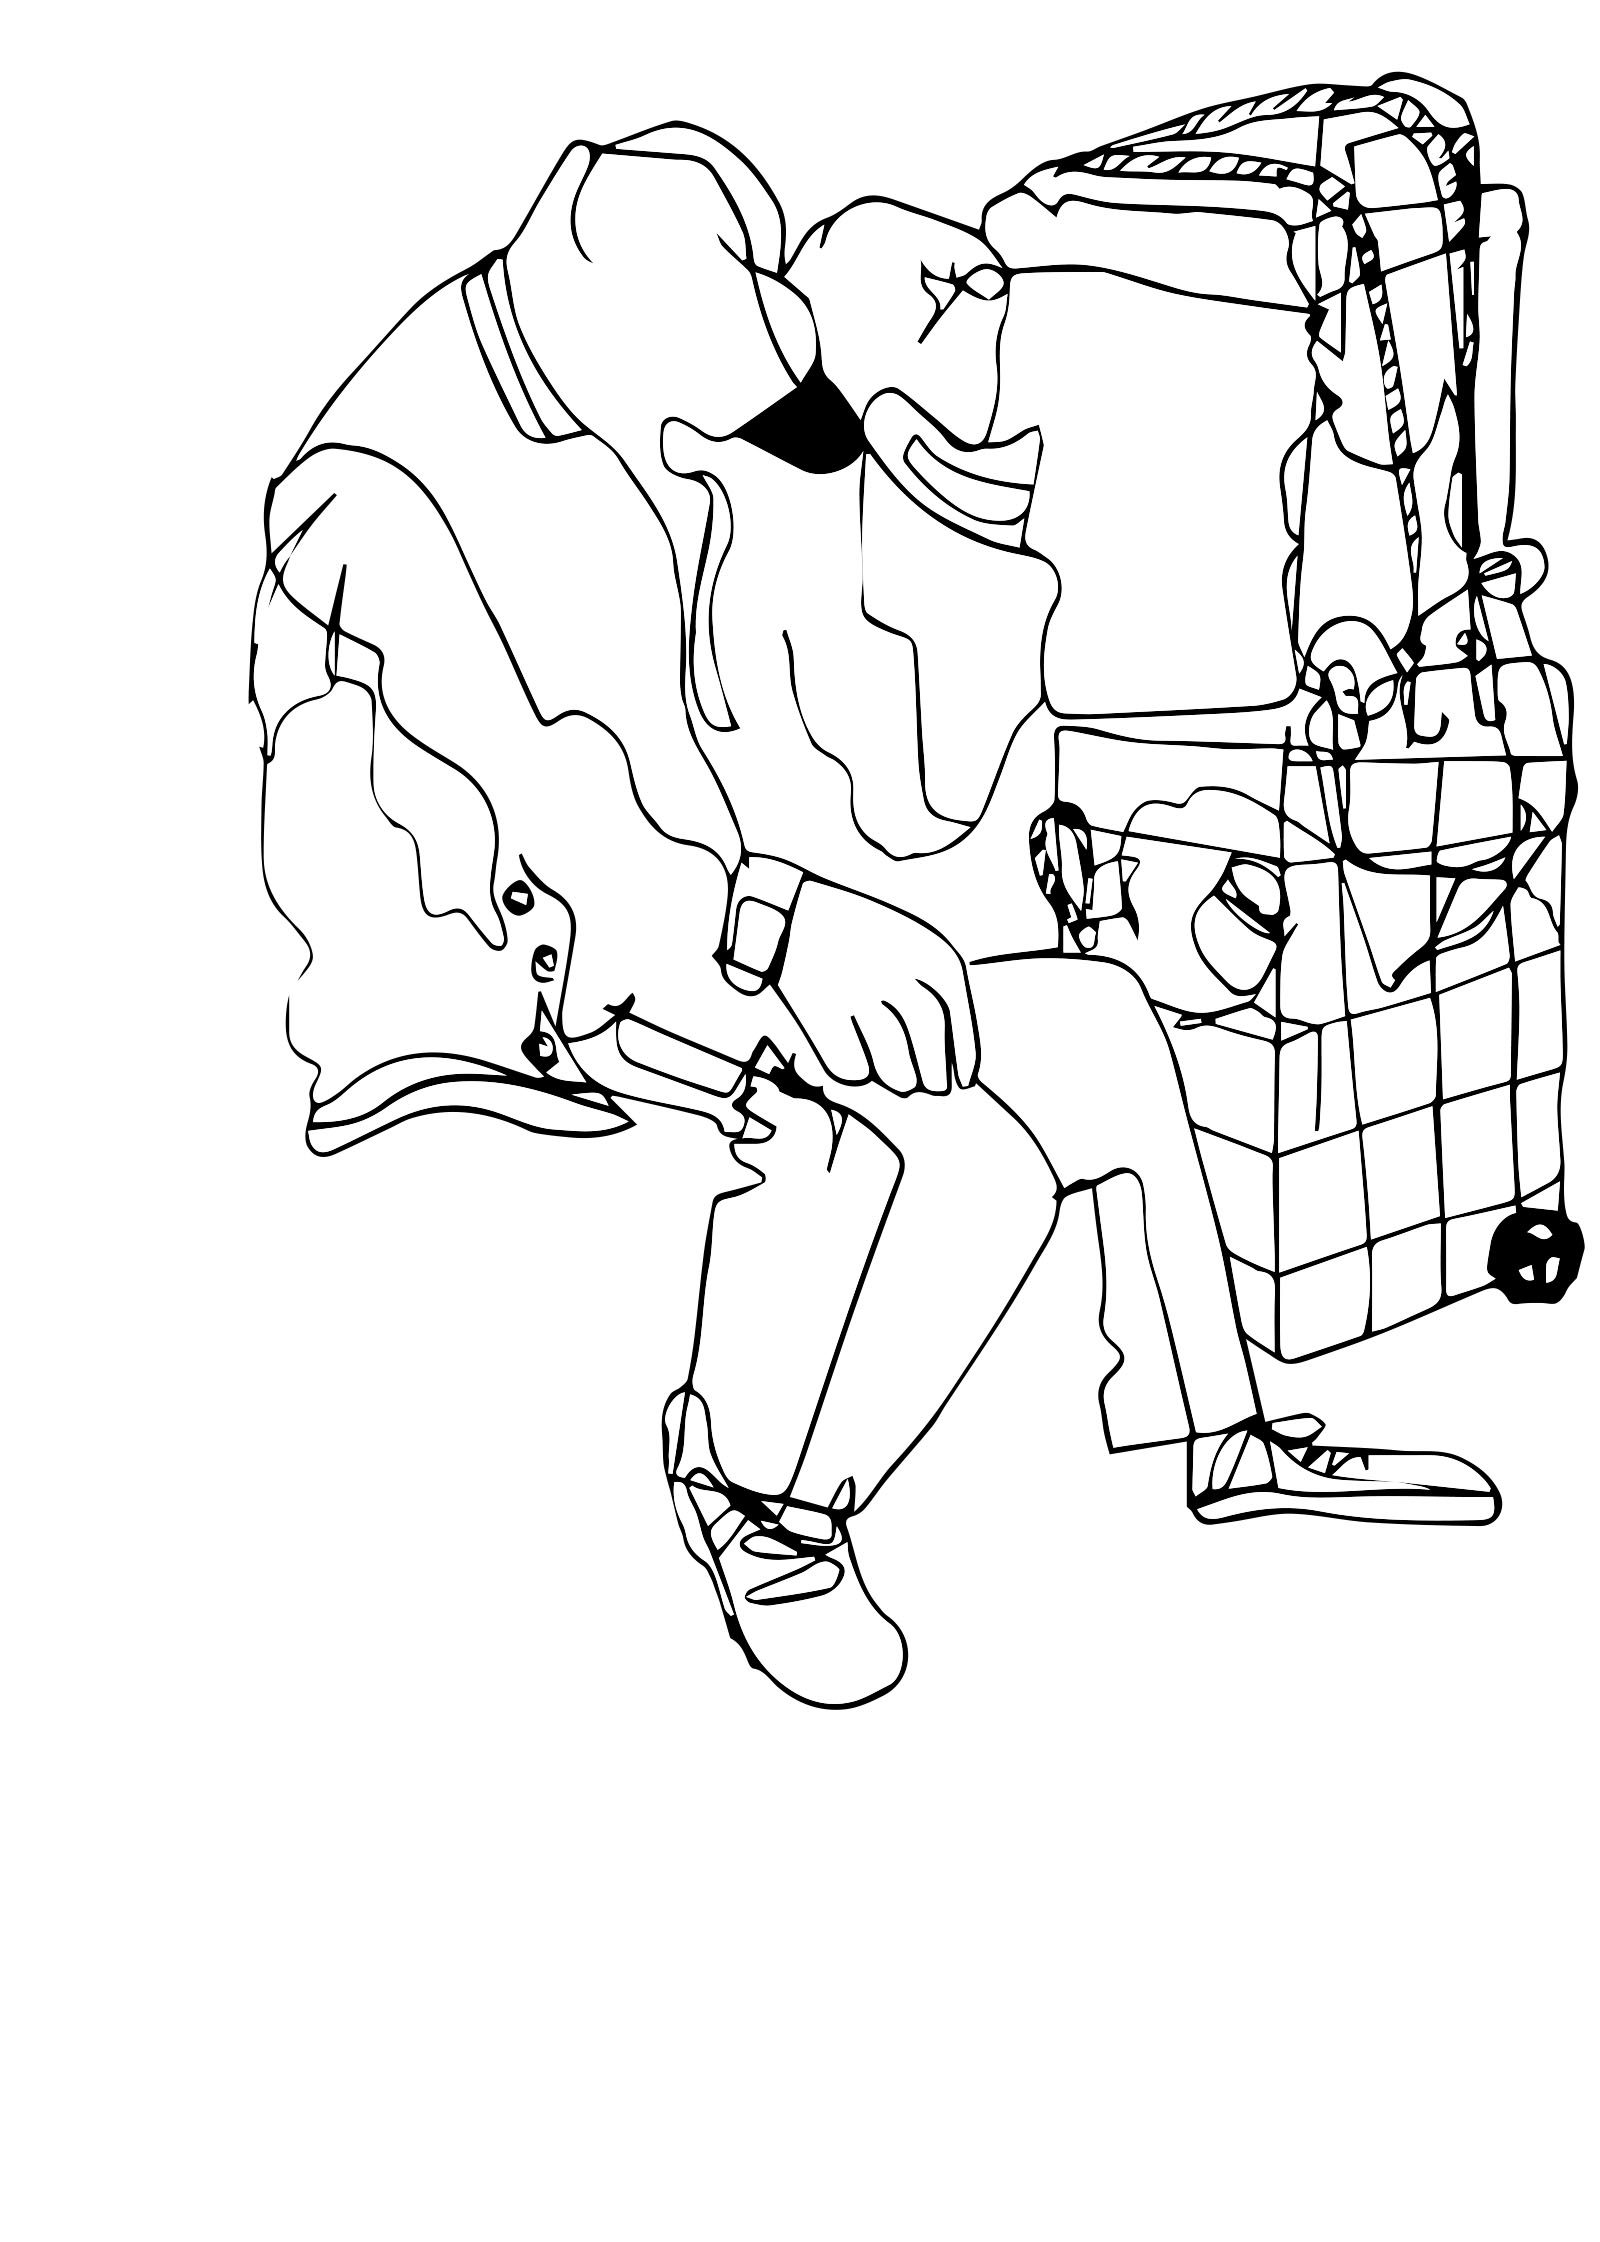 """a man and his baggage  ,  2018   Ink on paper, vectorized  5.5"""" x 8.5"""""""